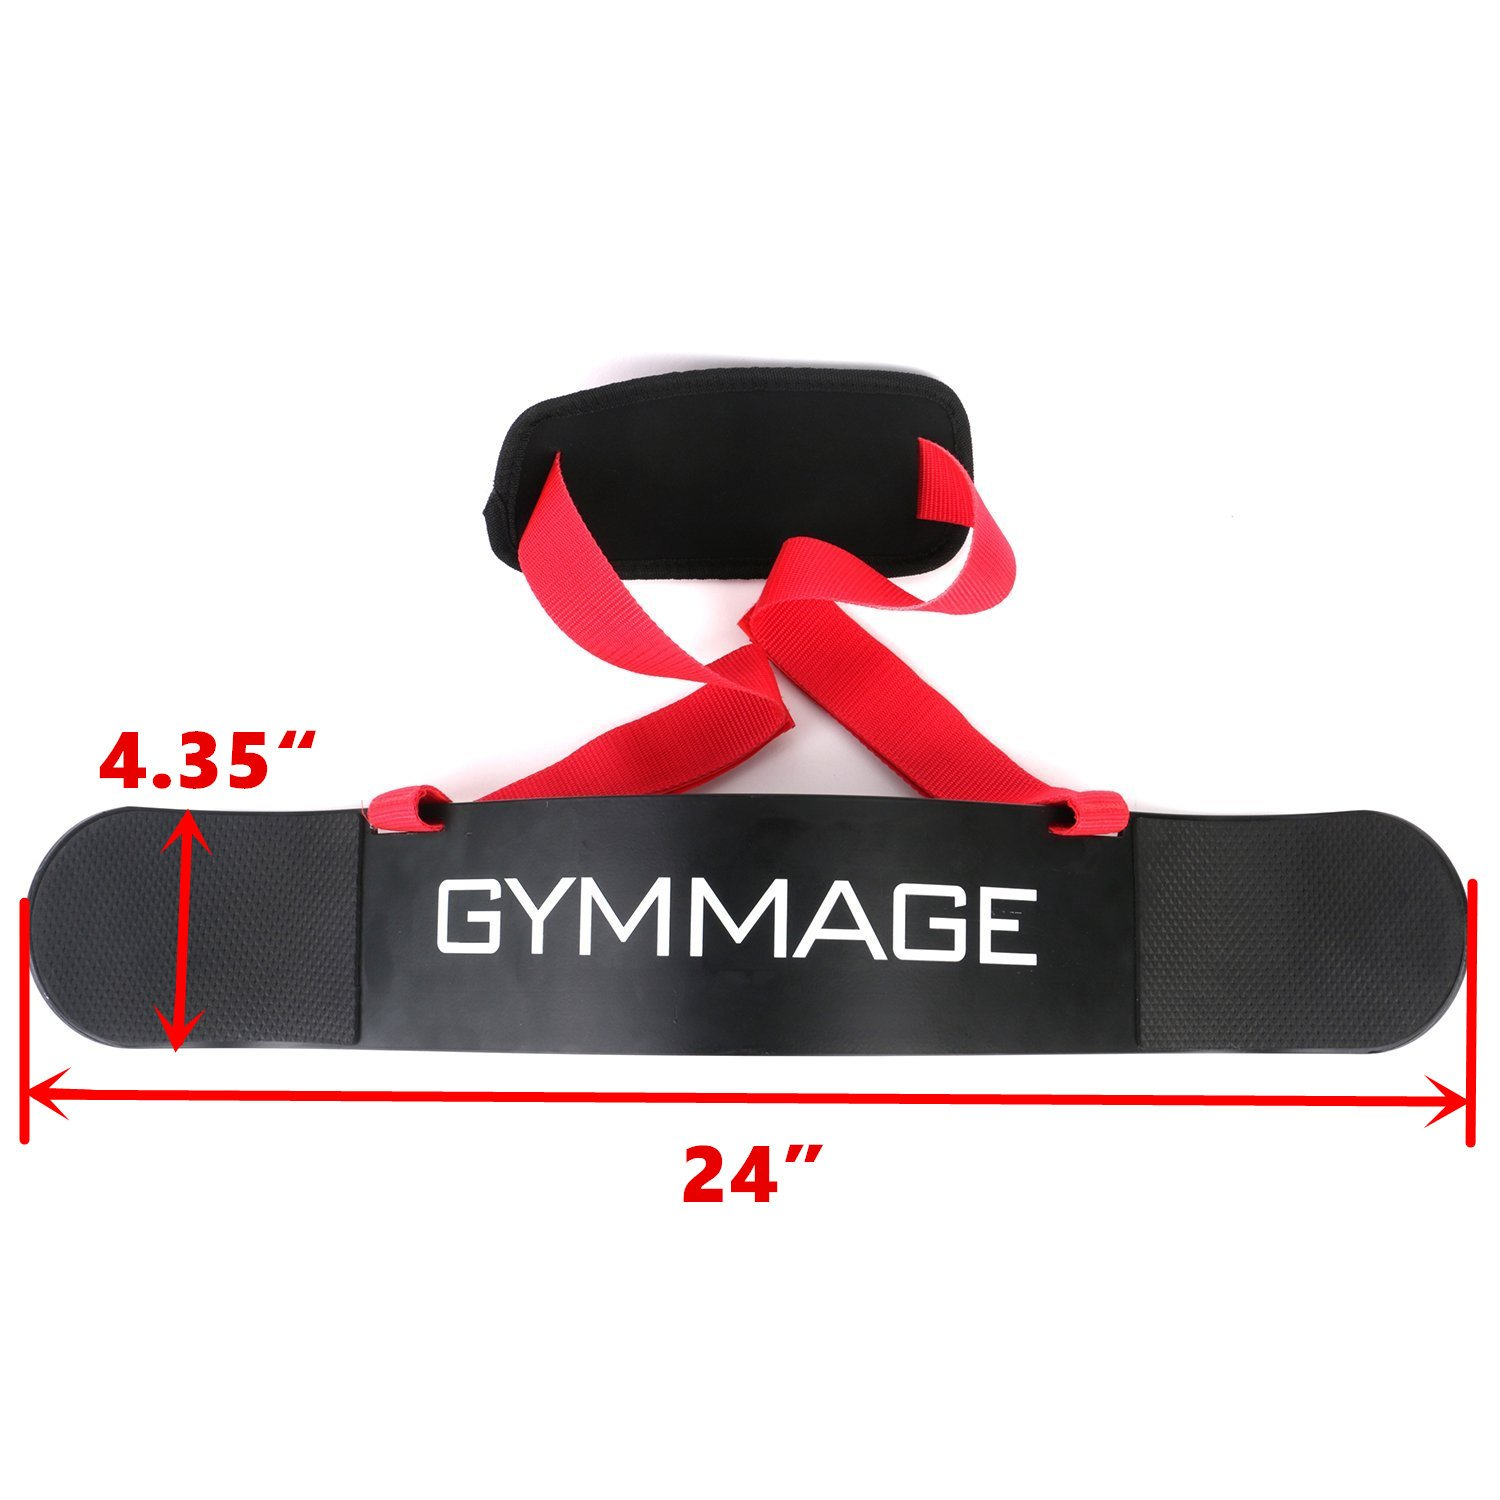 GYMMAGE Arm Blaster Biceps and Triceps Isolator Bomber Curl, Perfect